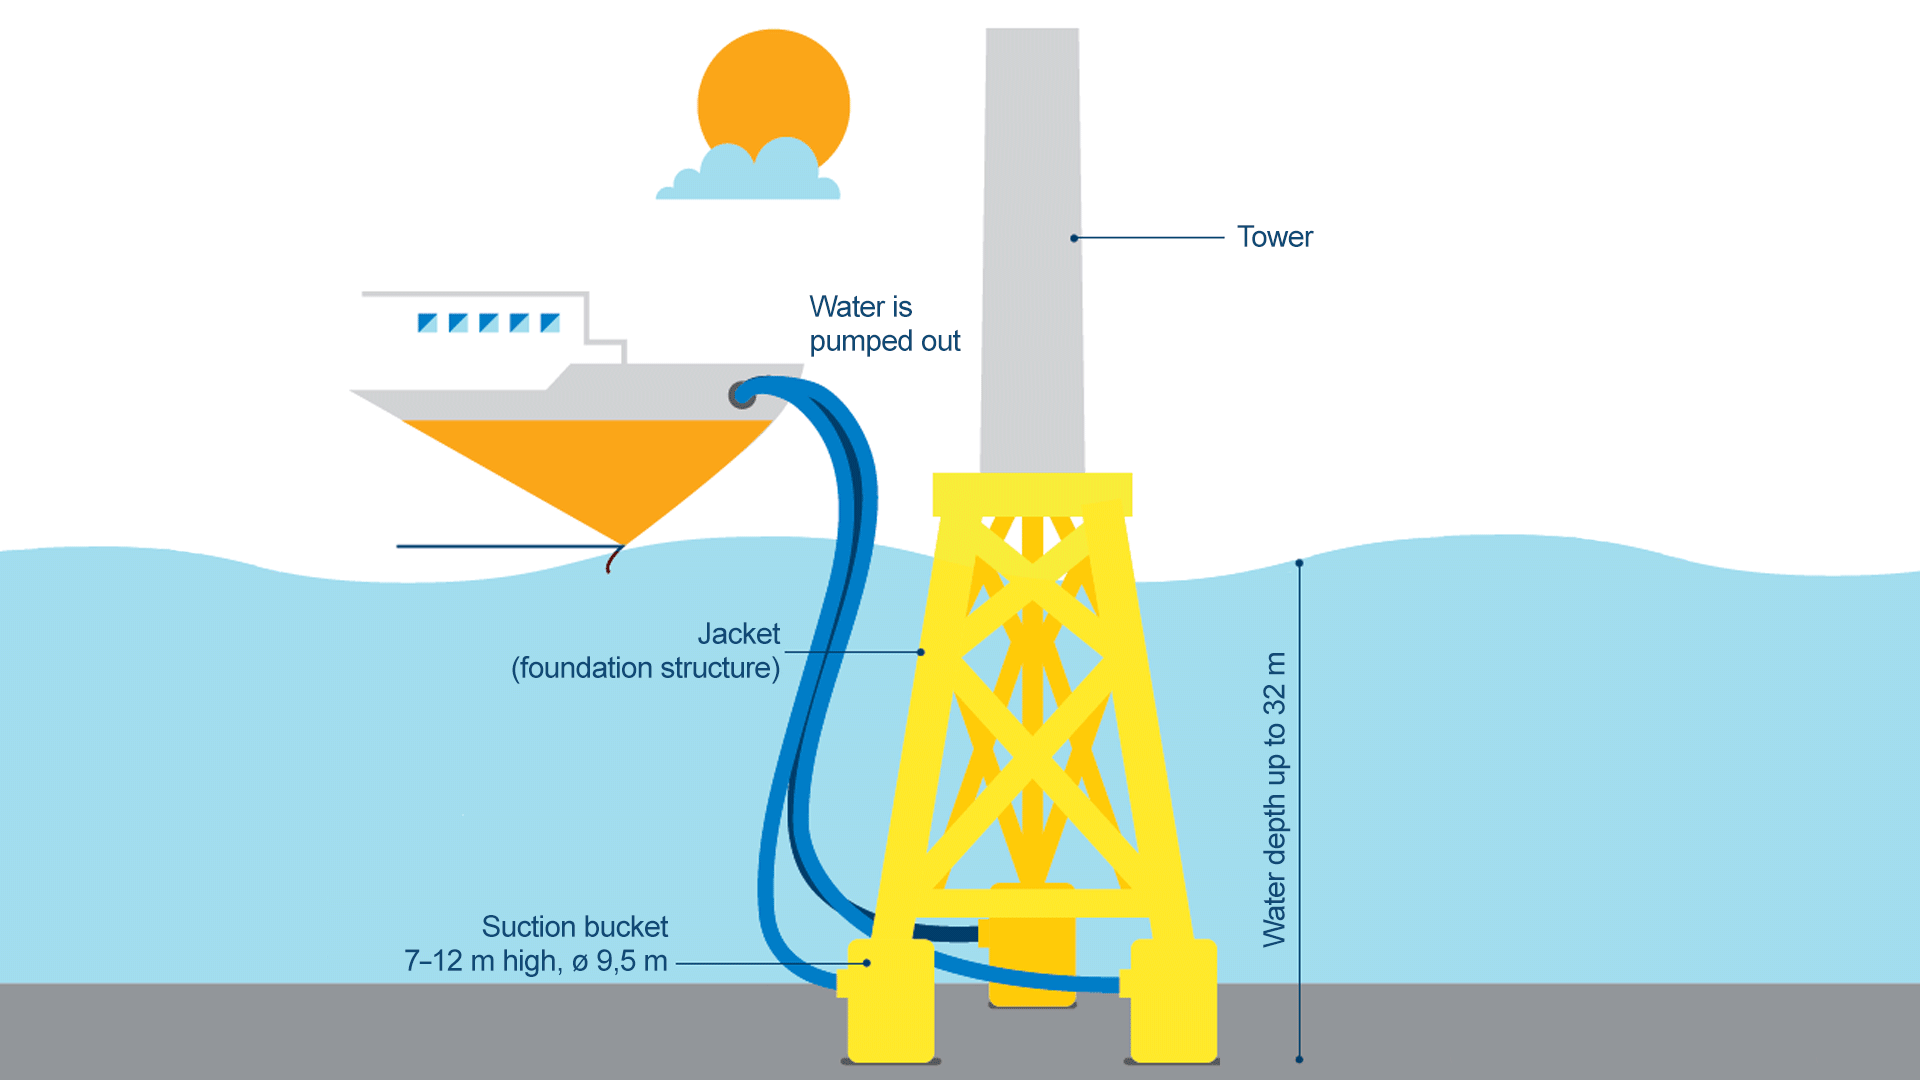 Illustration of a suction bucket and how it works